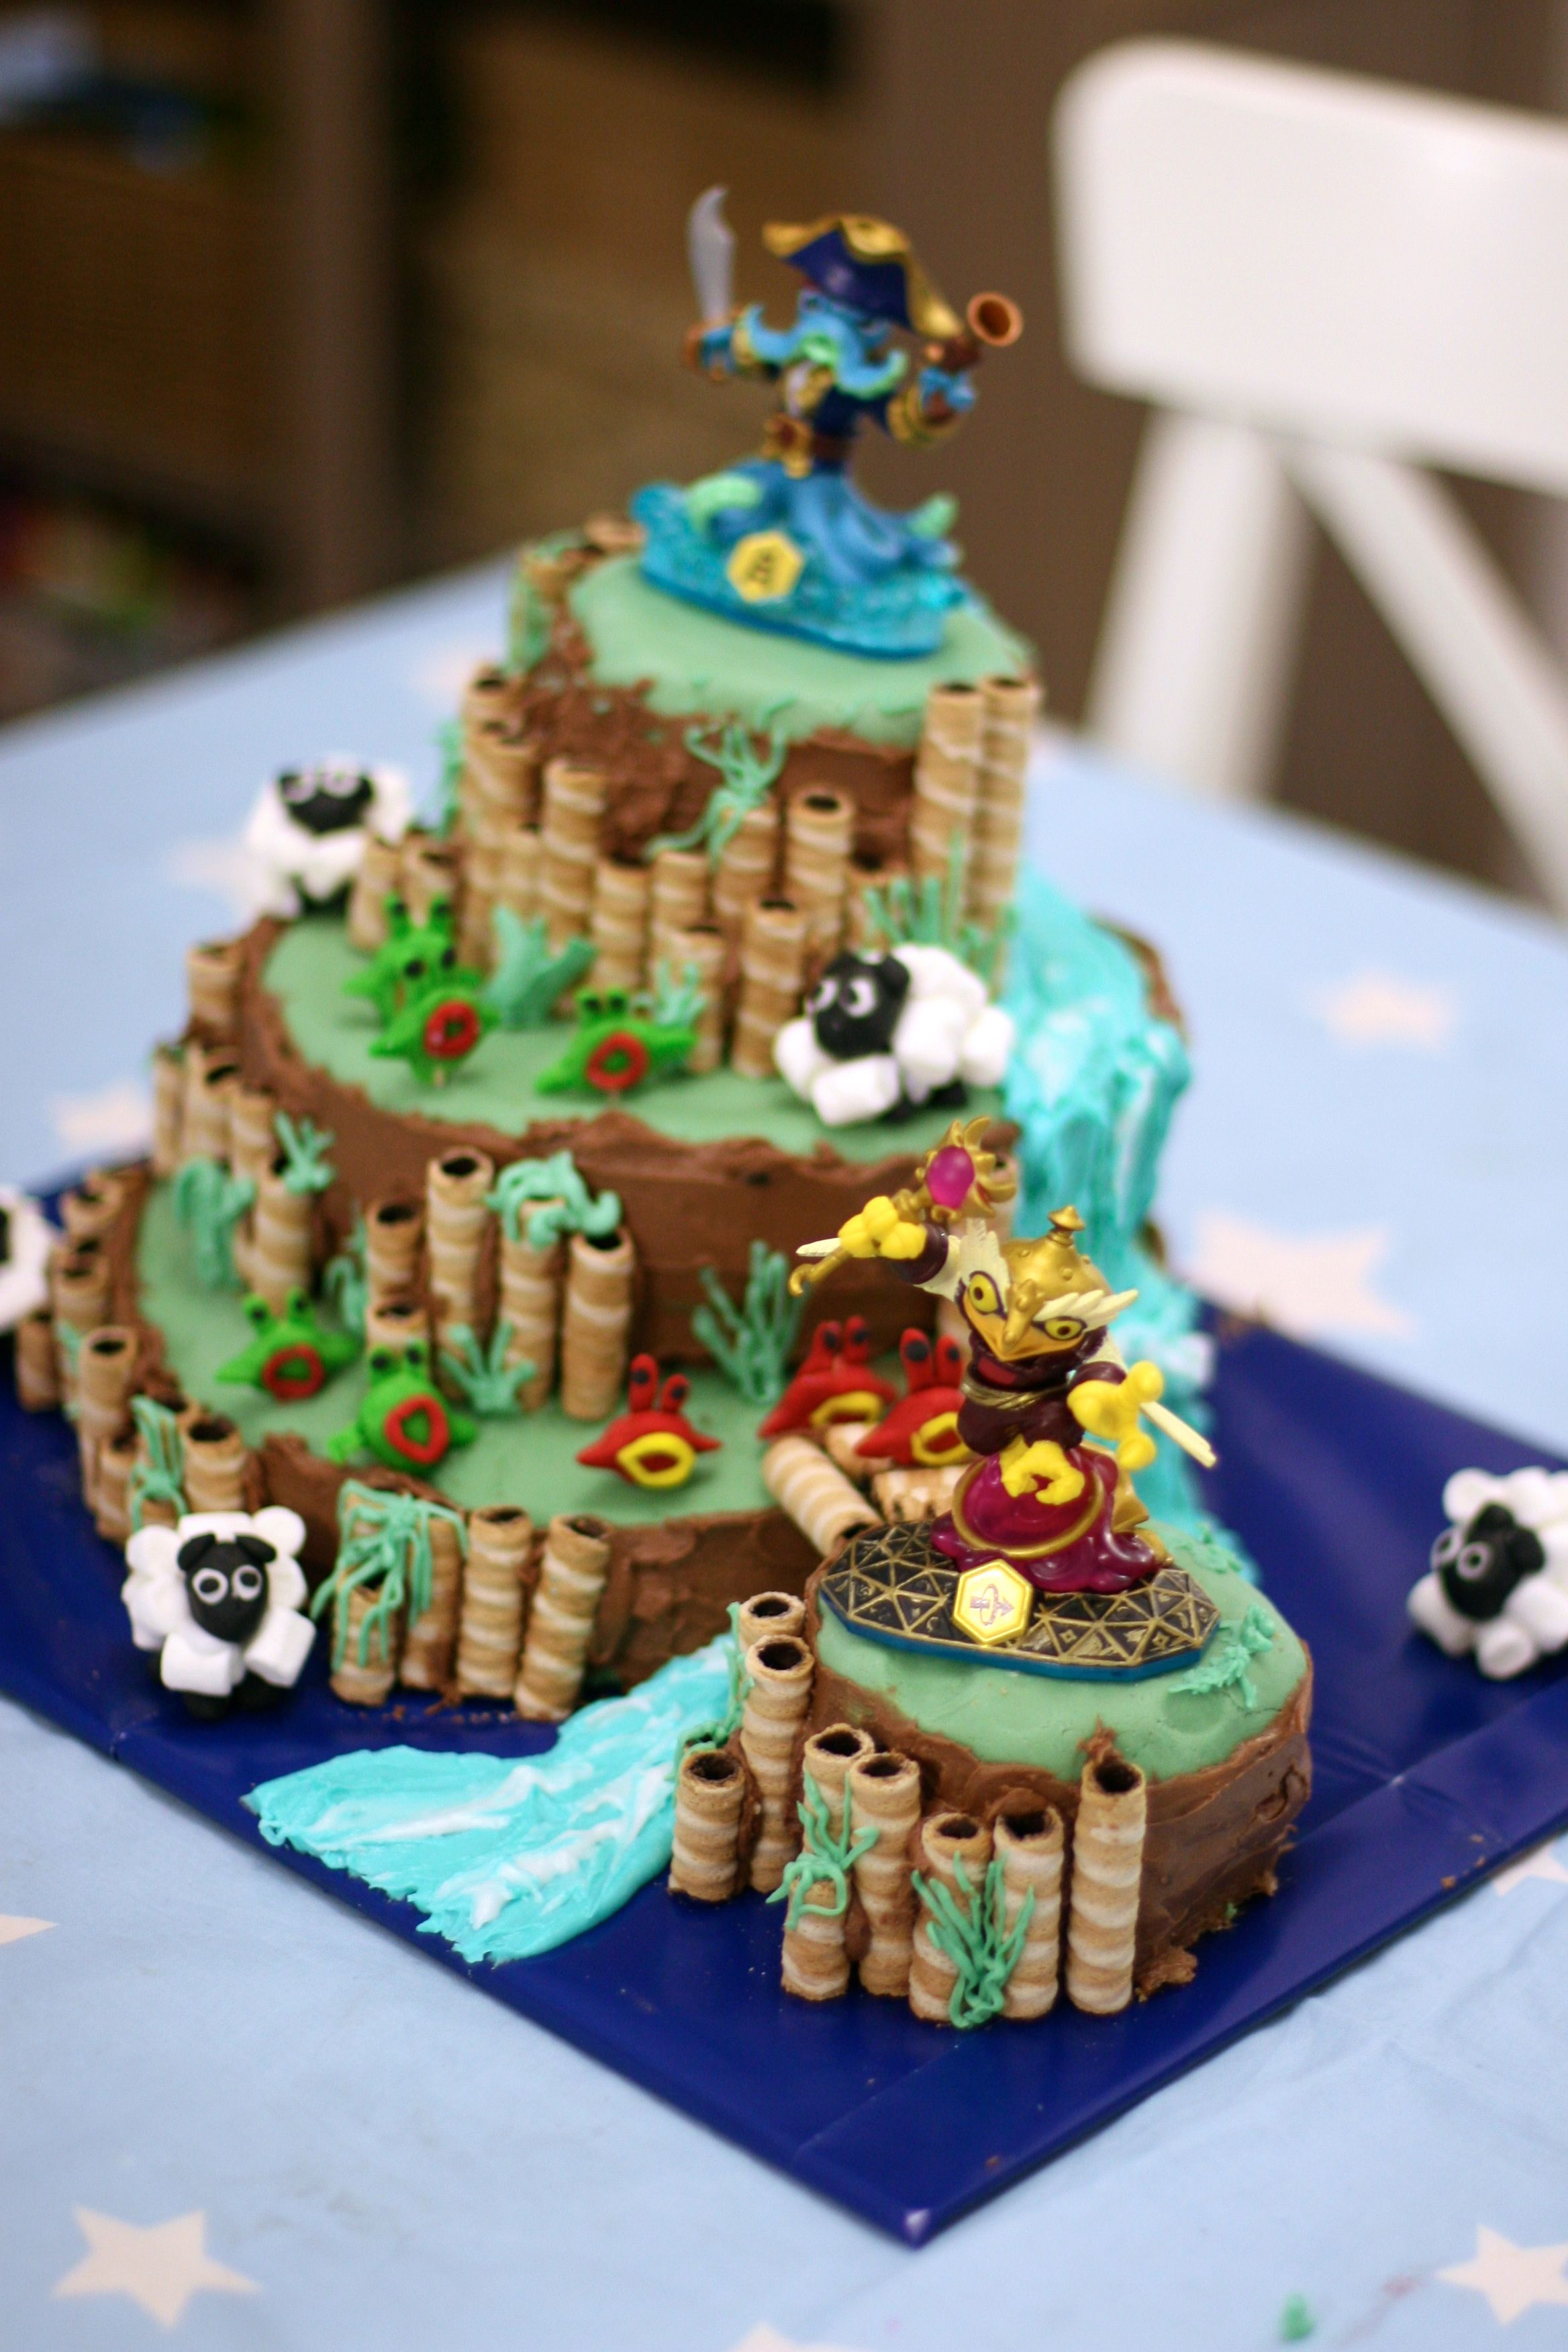 Fabulous Skylander Birthday Cake Features 4 Levels River Bridge Sheep Funny Birthday Cards Online Inifodamsfinfo